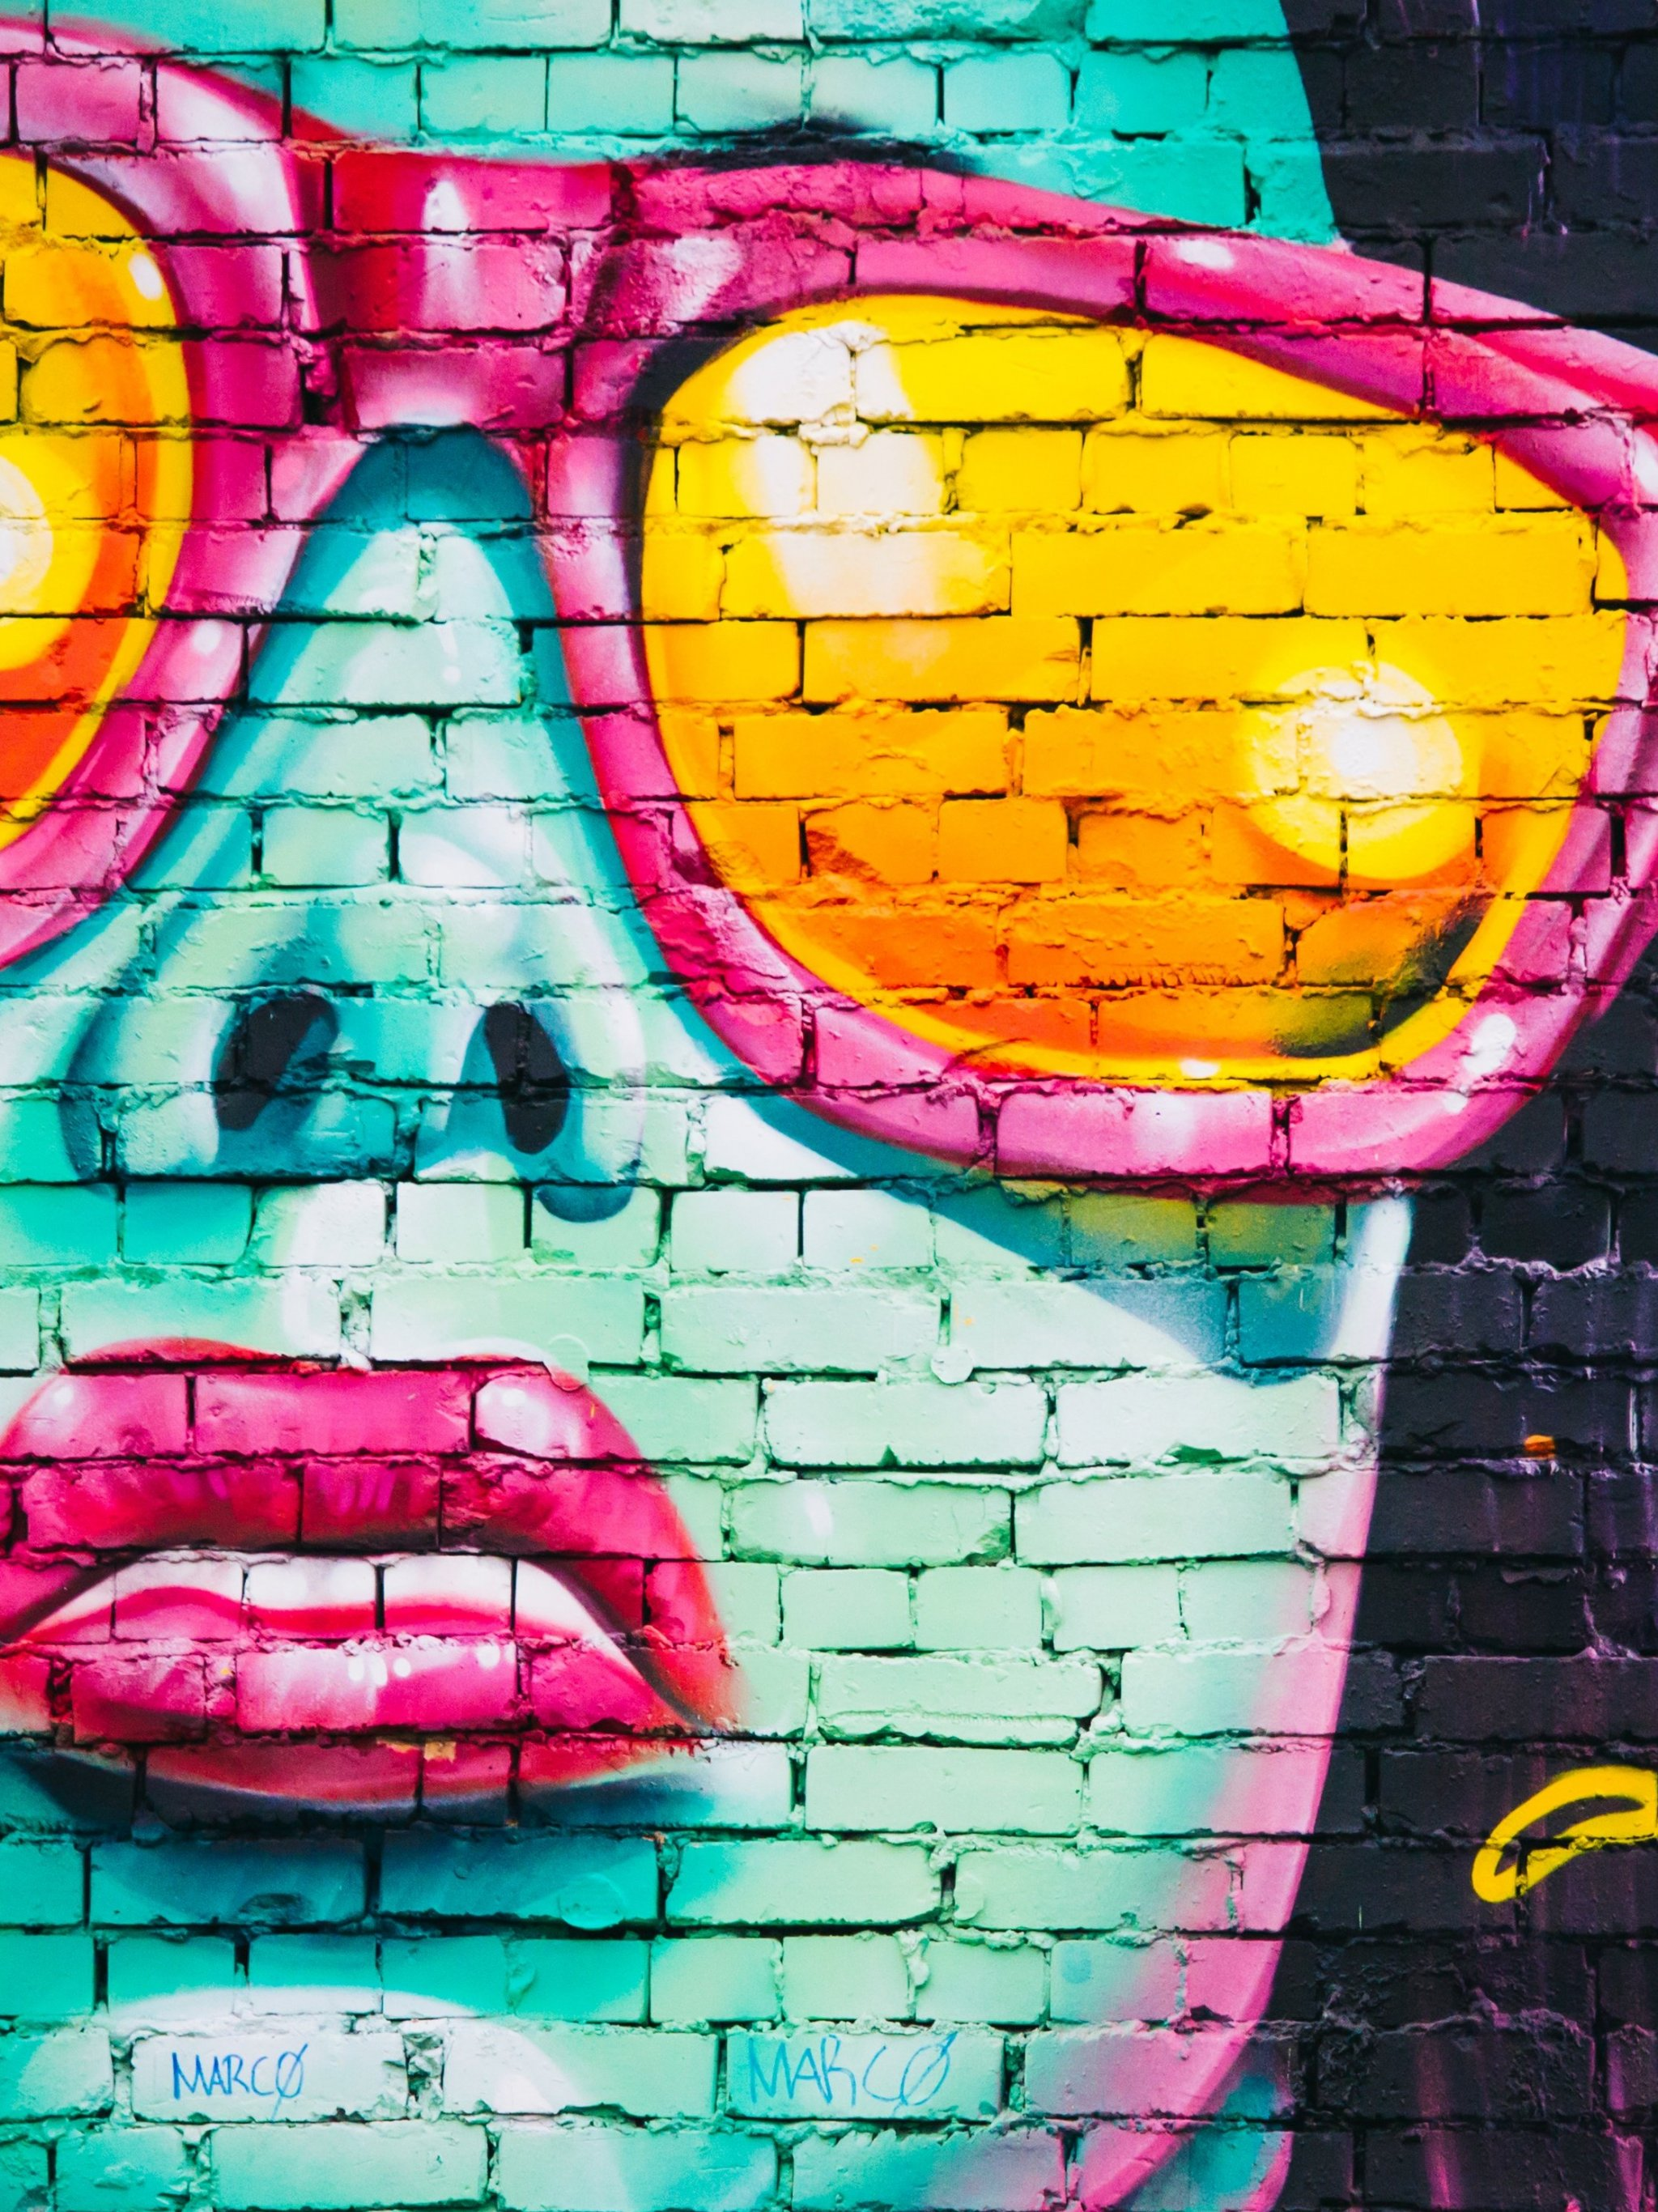 Girl With Sunglasses Graffiti Wallpaper Iphone Android Desktop Backgrounds